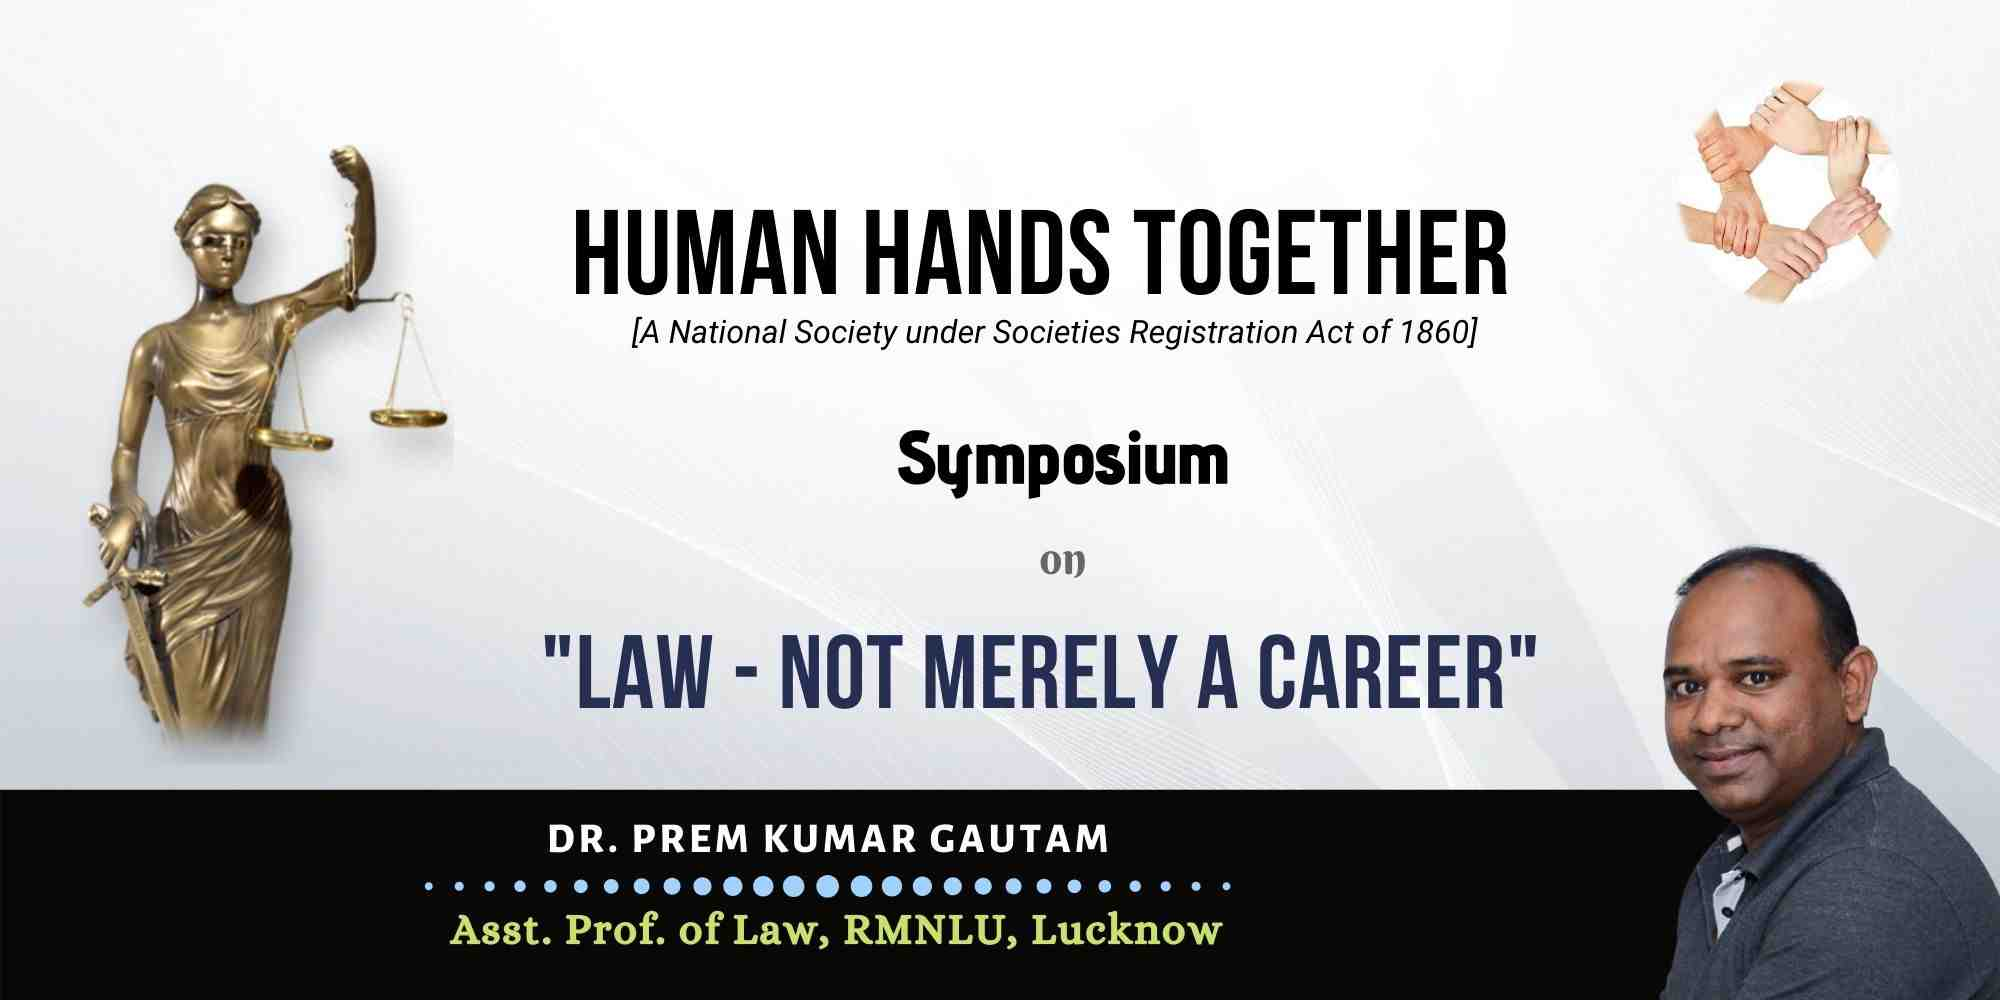 LAW – NOT MERELY A CAREER